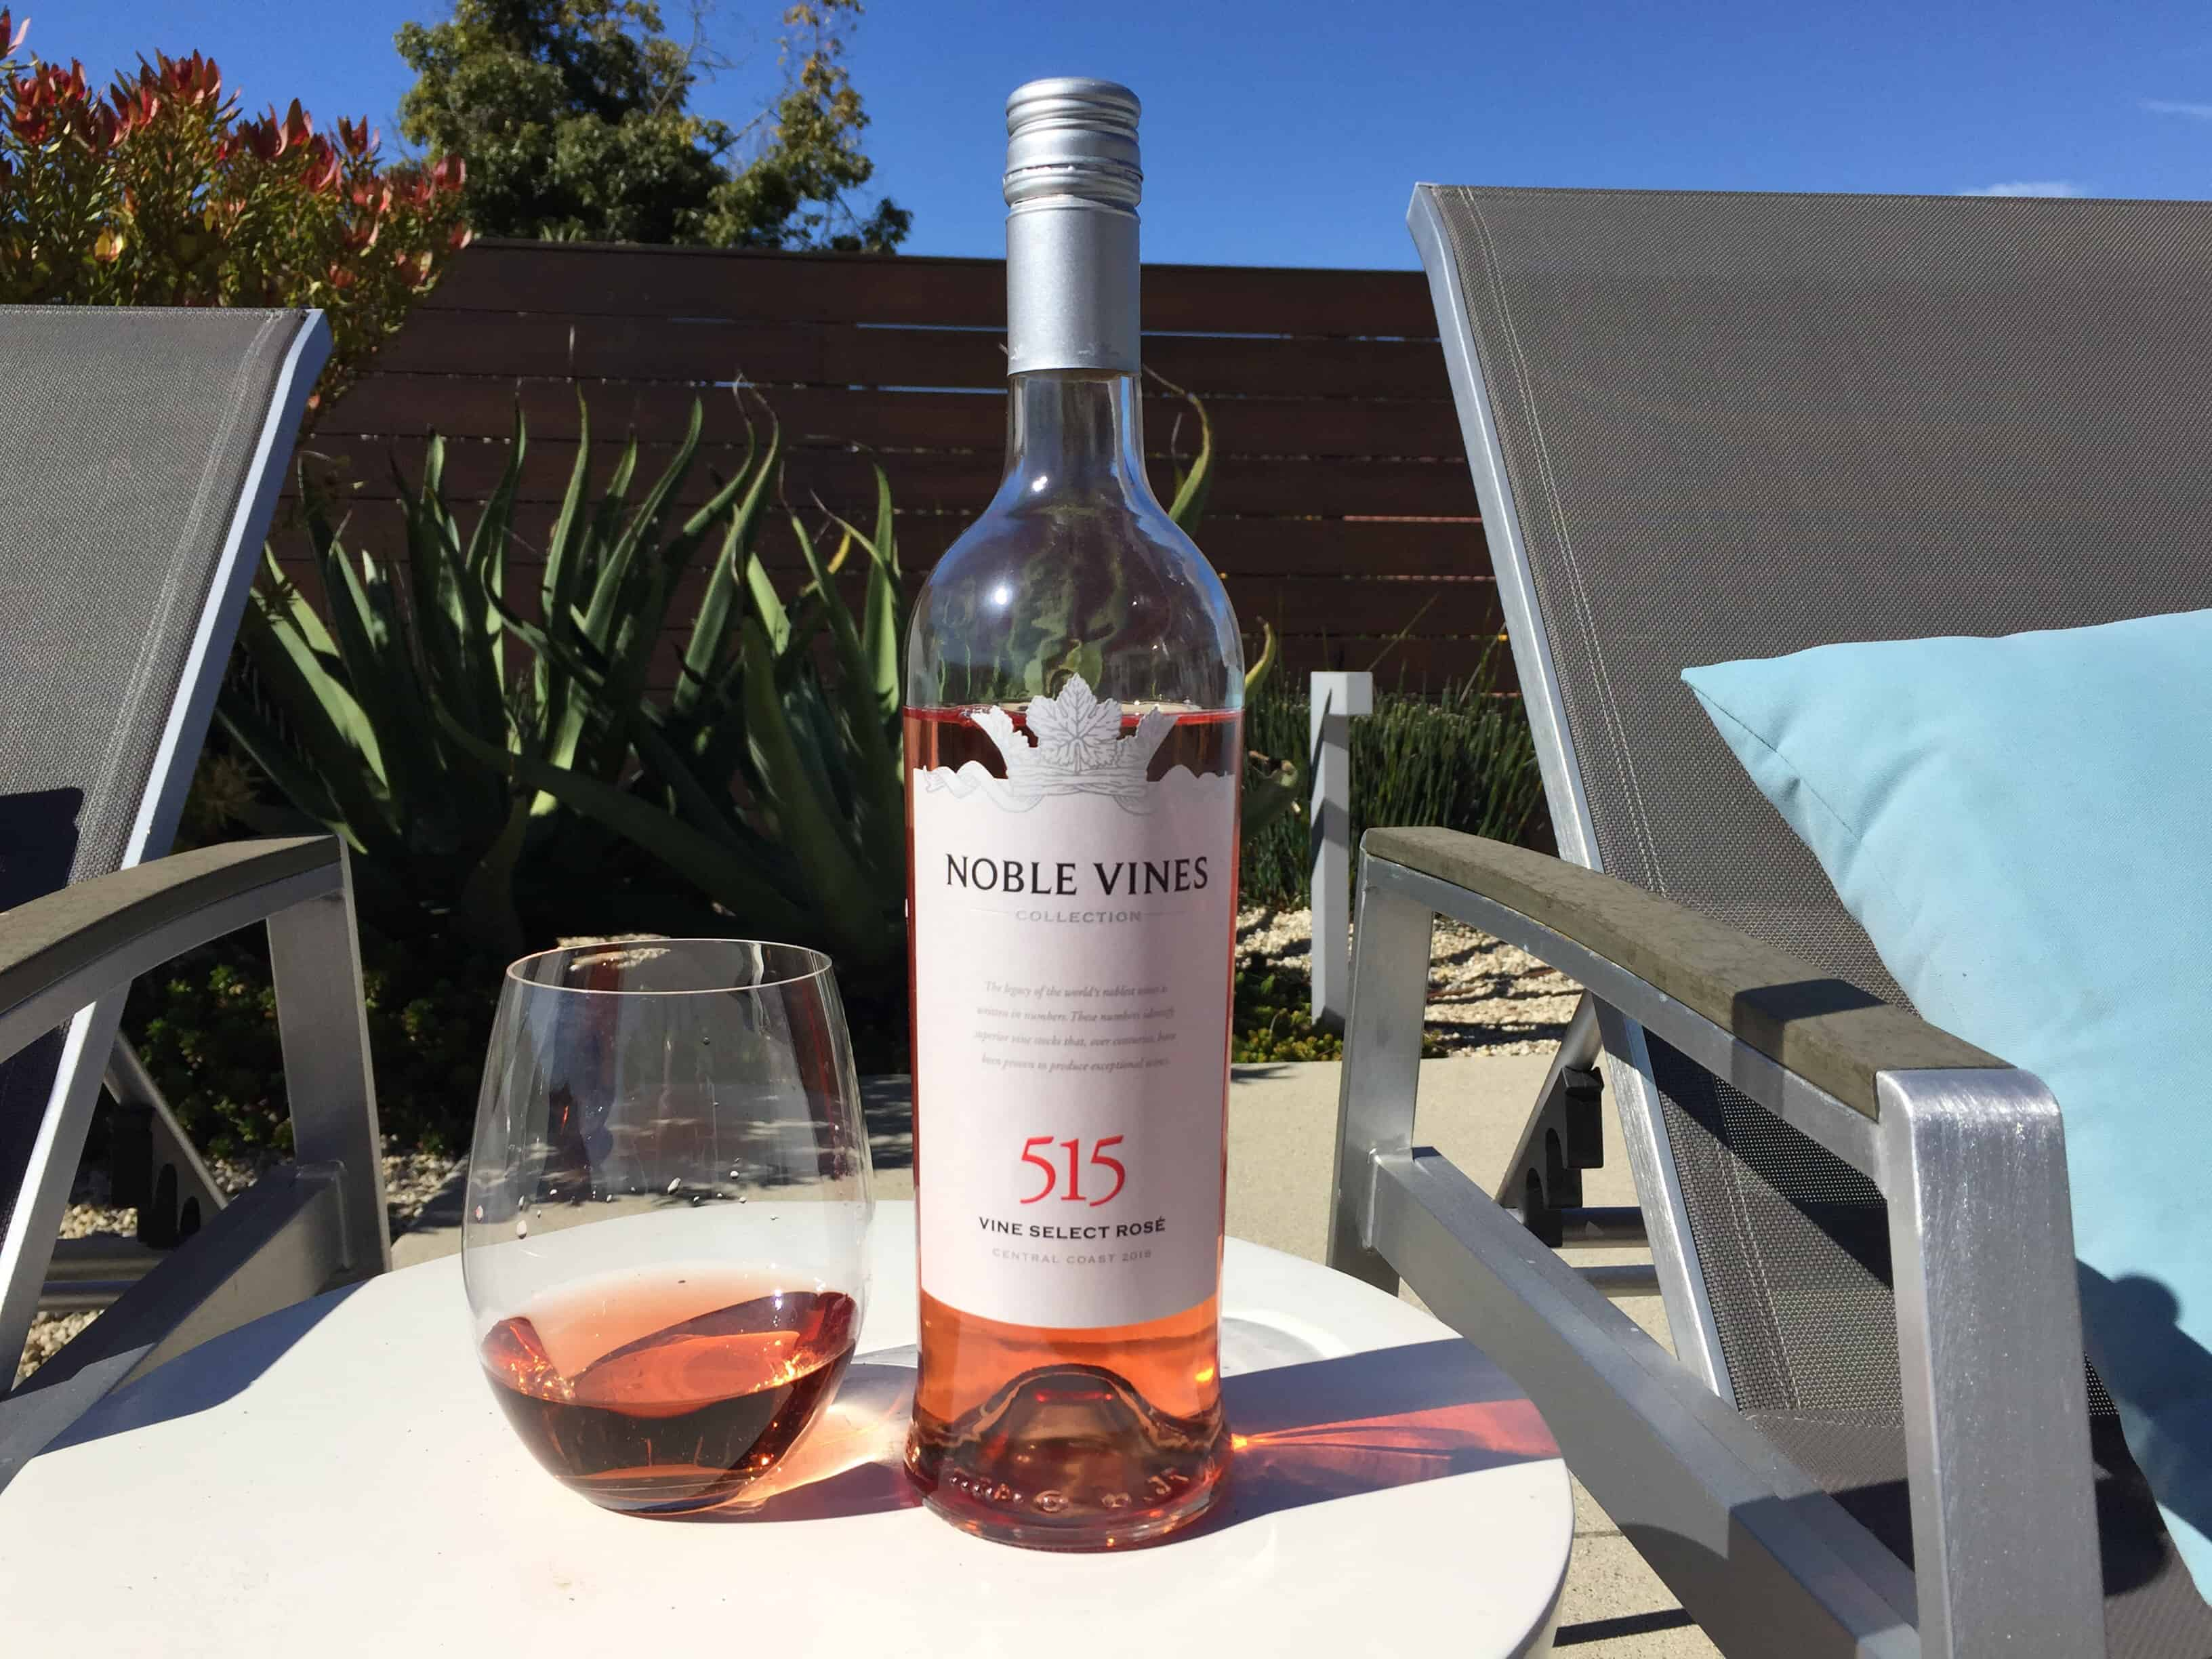 Glass and bottle of Noble Vines 515 Rose from Costco